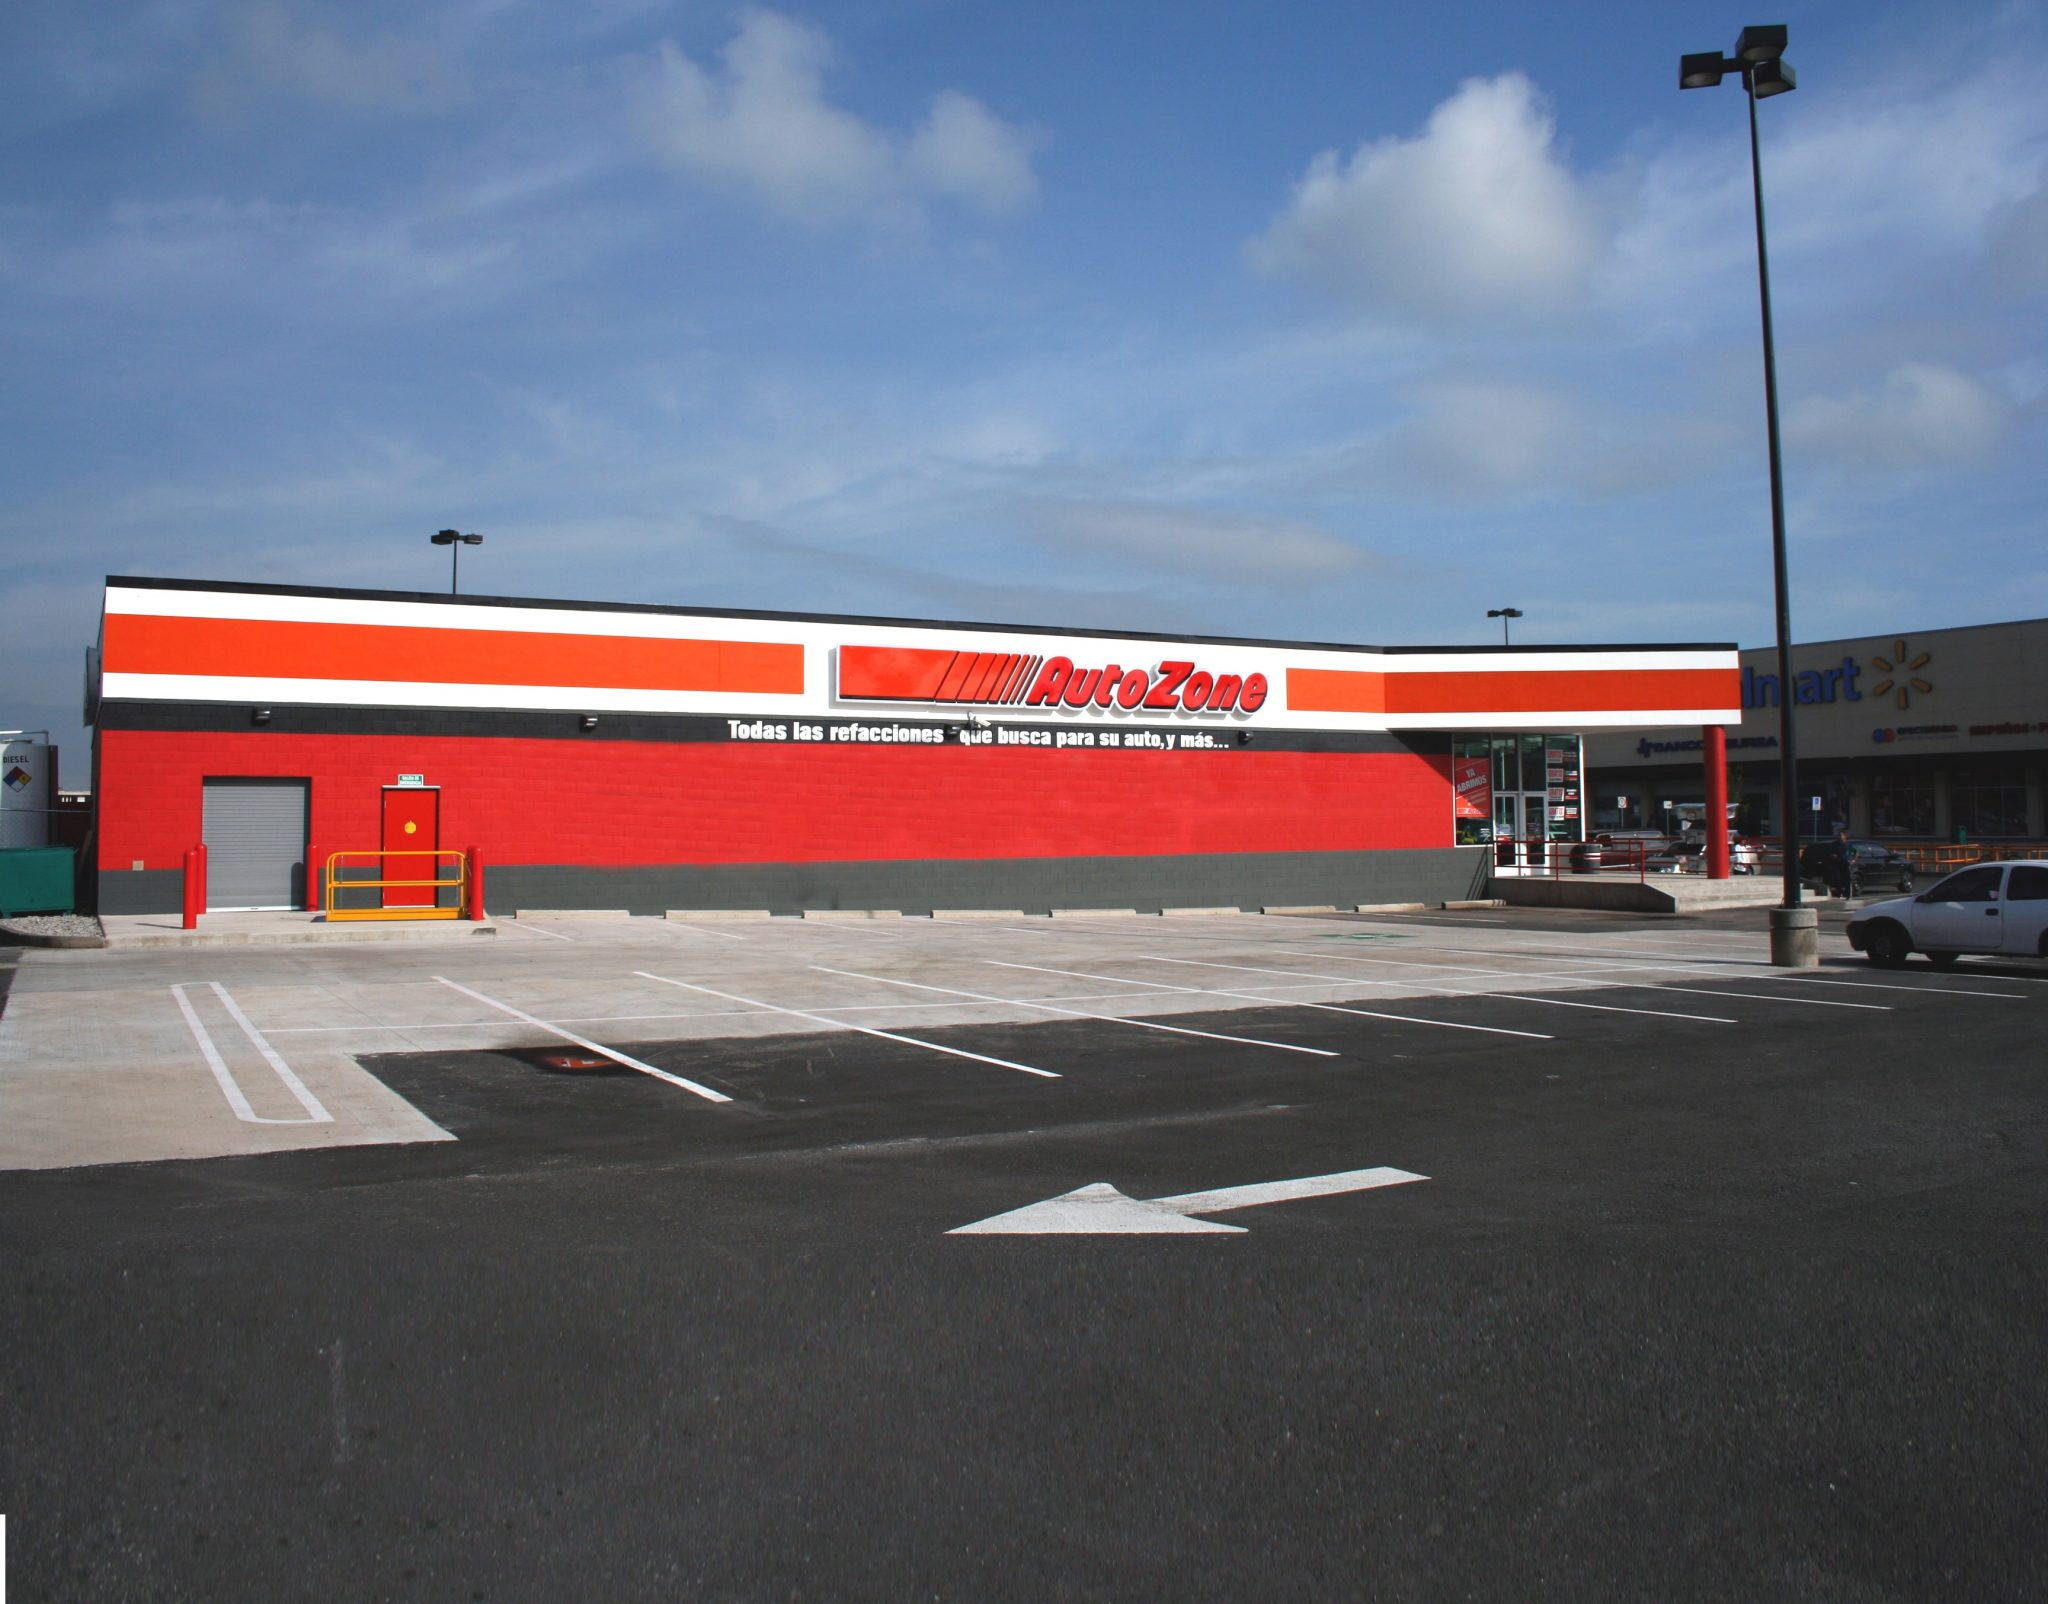 Outside view of Autozone retail store in Texcoco.